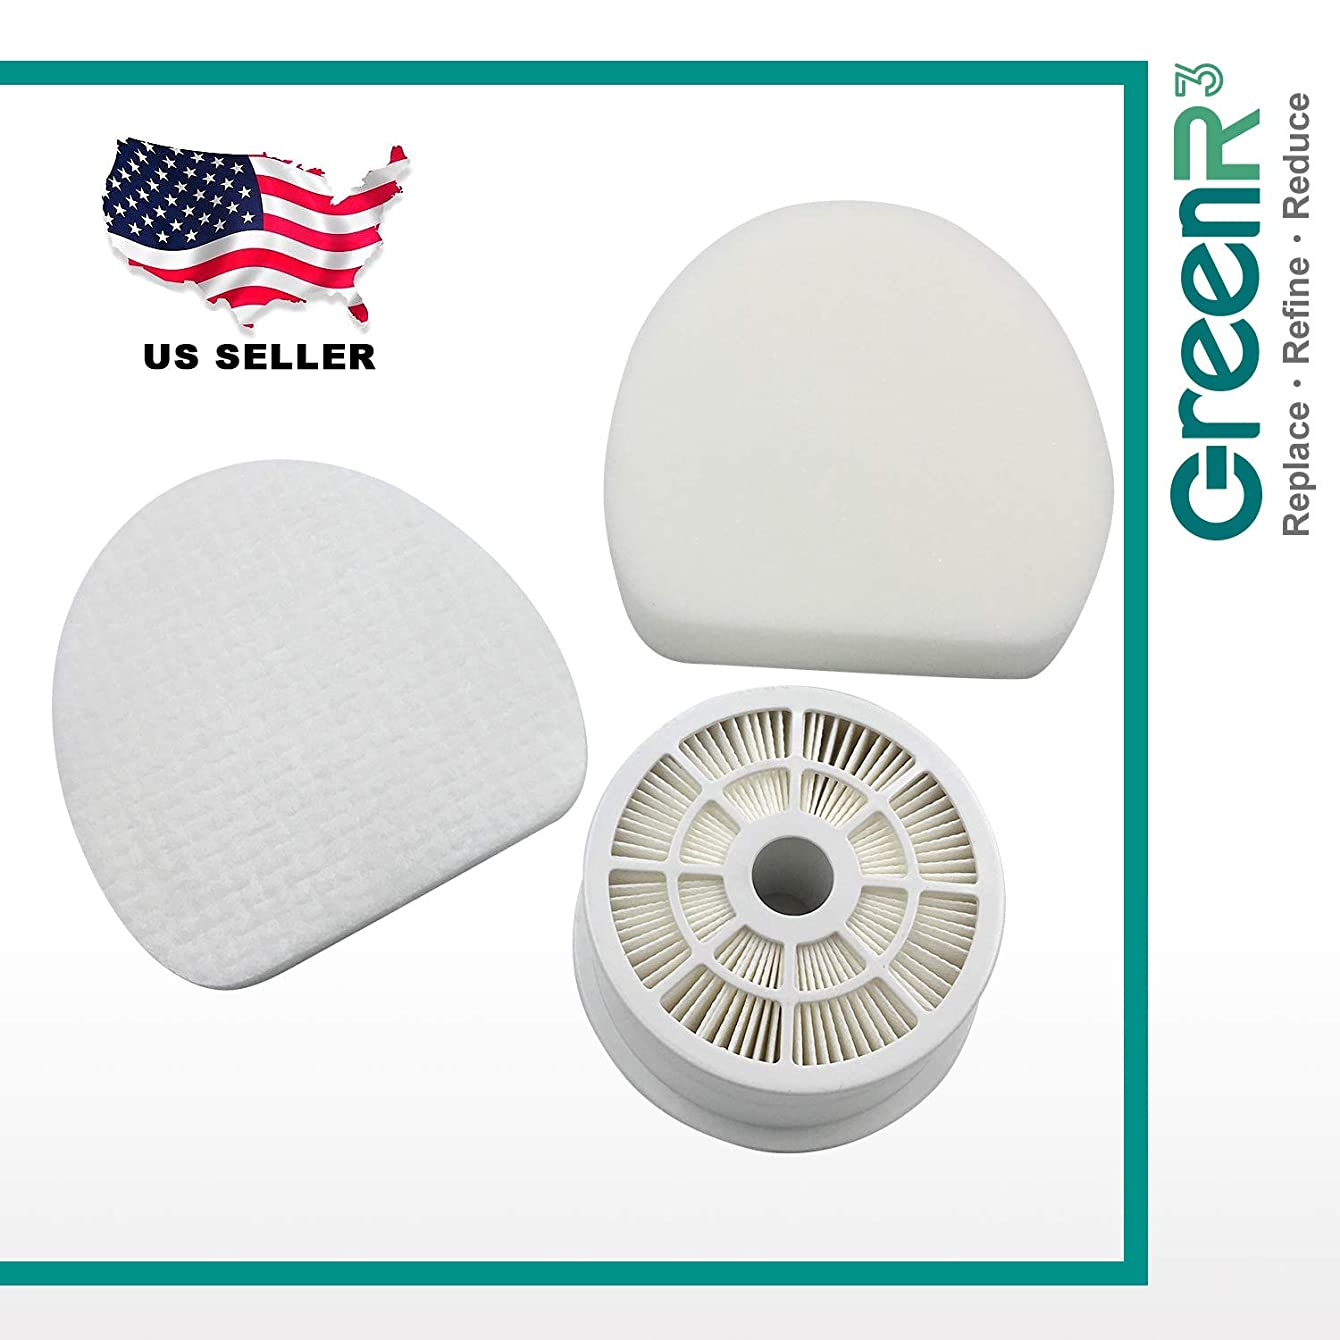 GreenR3 1-Pack HEPA Air Filter Set Replaces Shark Part# XHF400 and XFF400 for Shark NV400 NV401 NV402. Includes 1 x HEPA Filter + 1 x Foam Pre-Filter